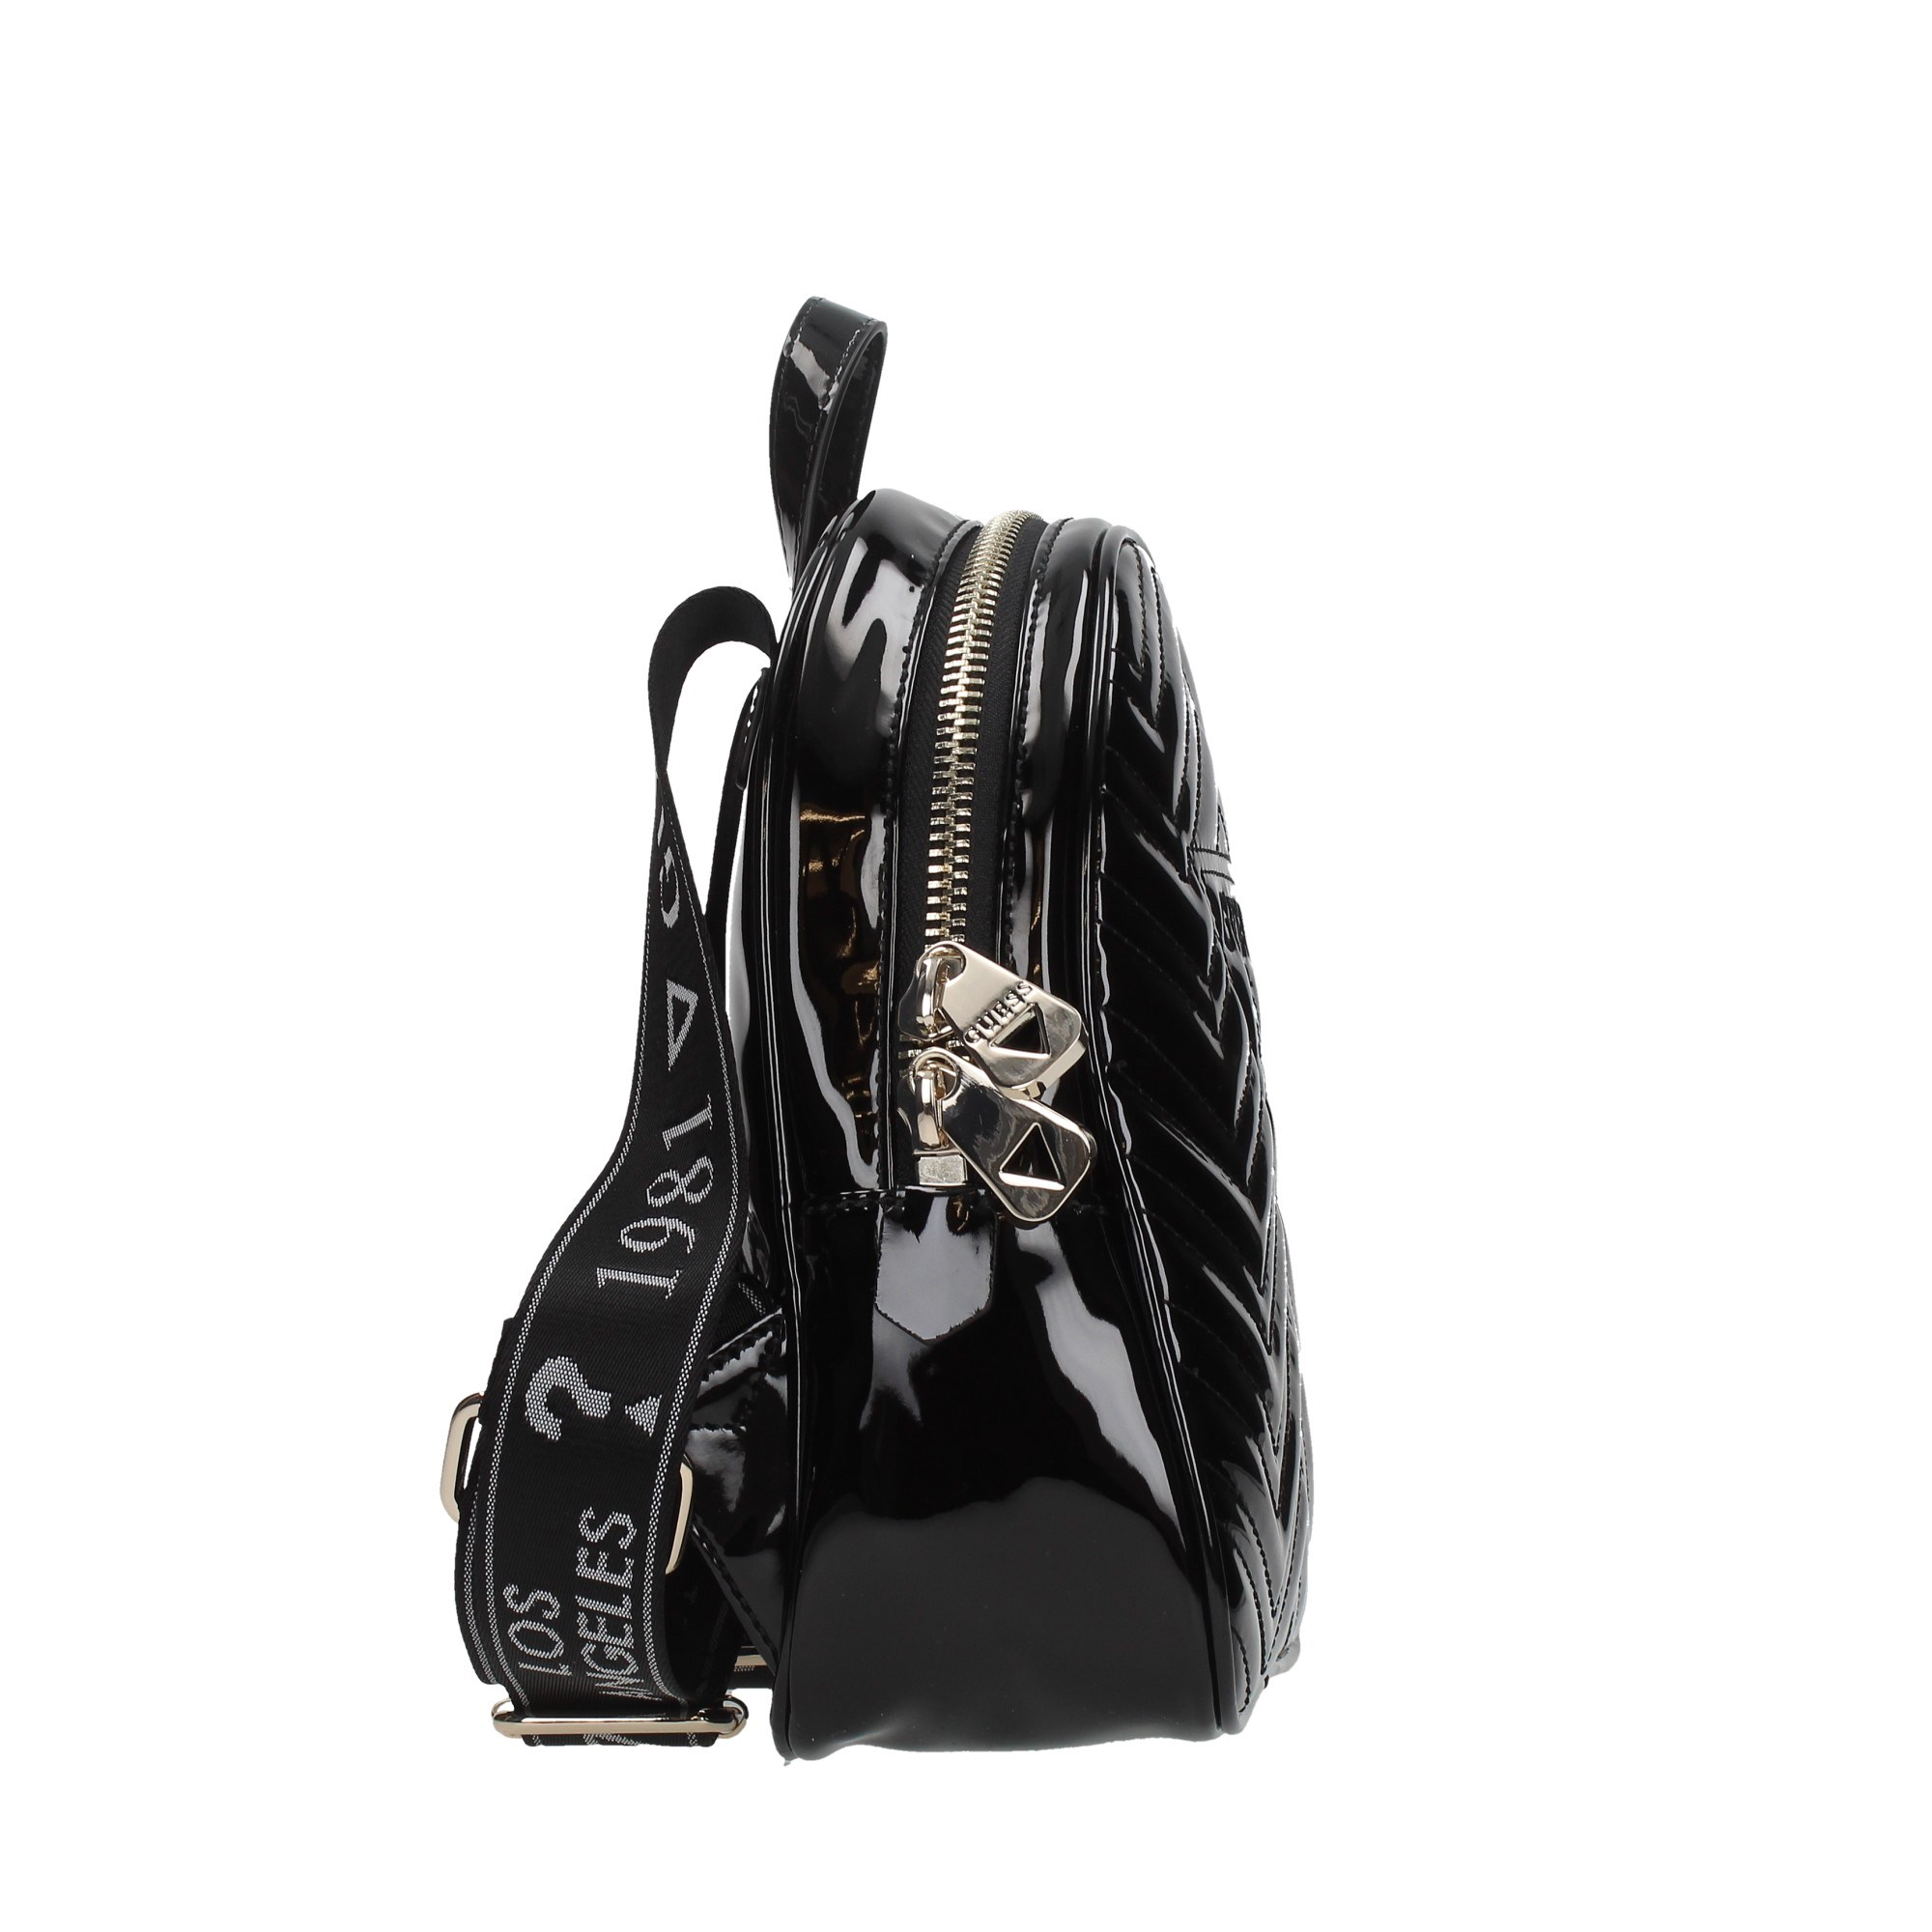 Guess Borse Accessories Women Backpack Black HWPG74/78320